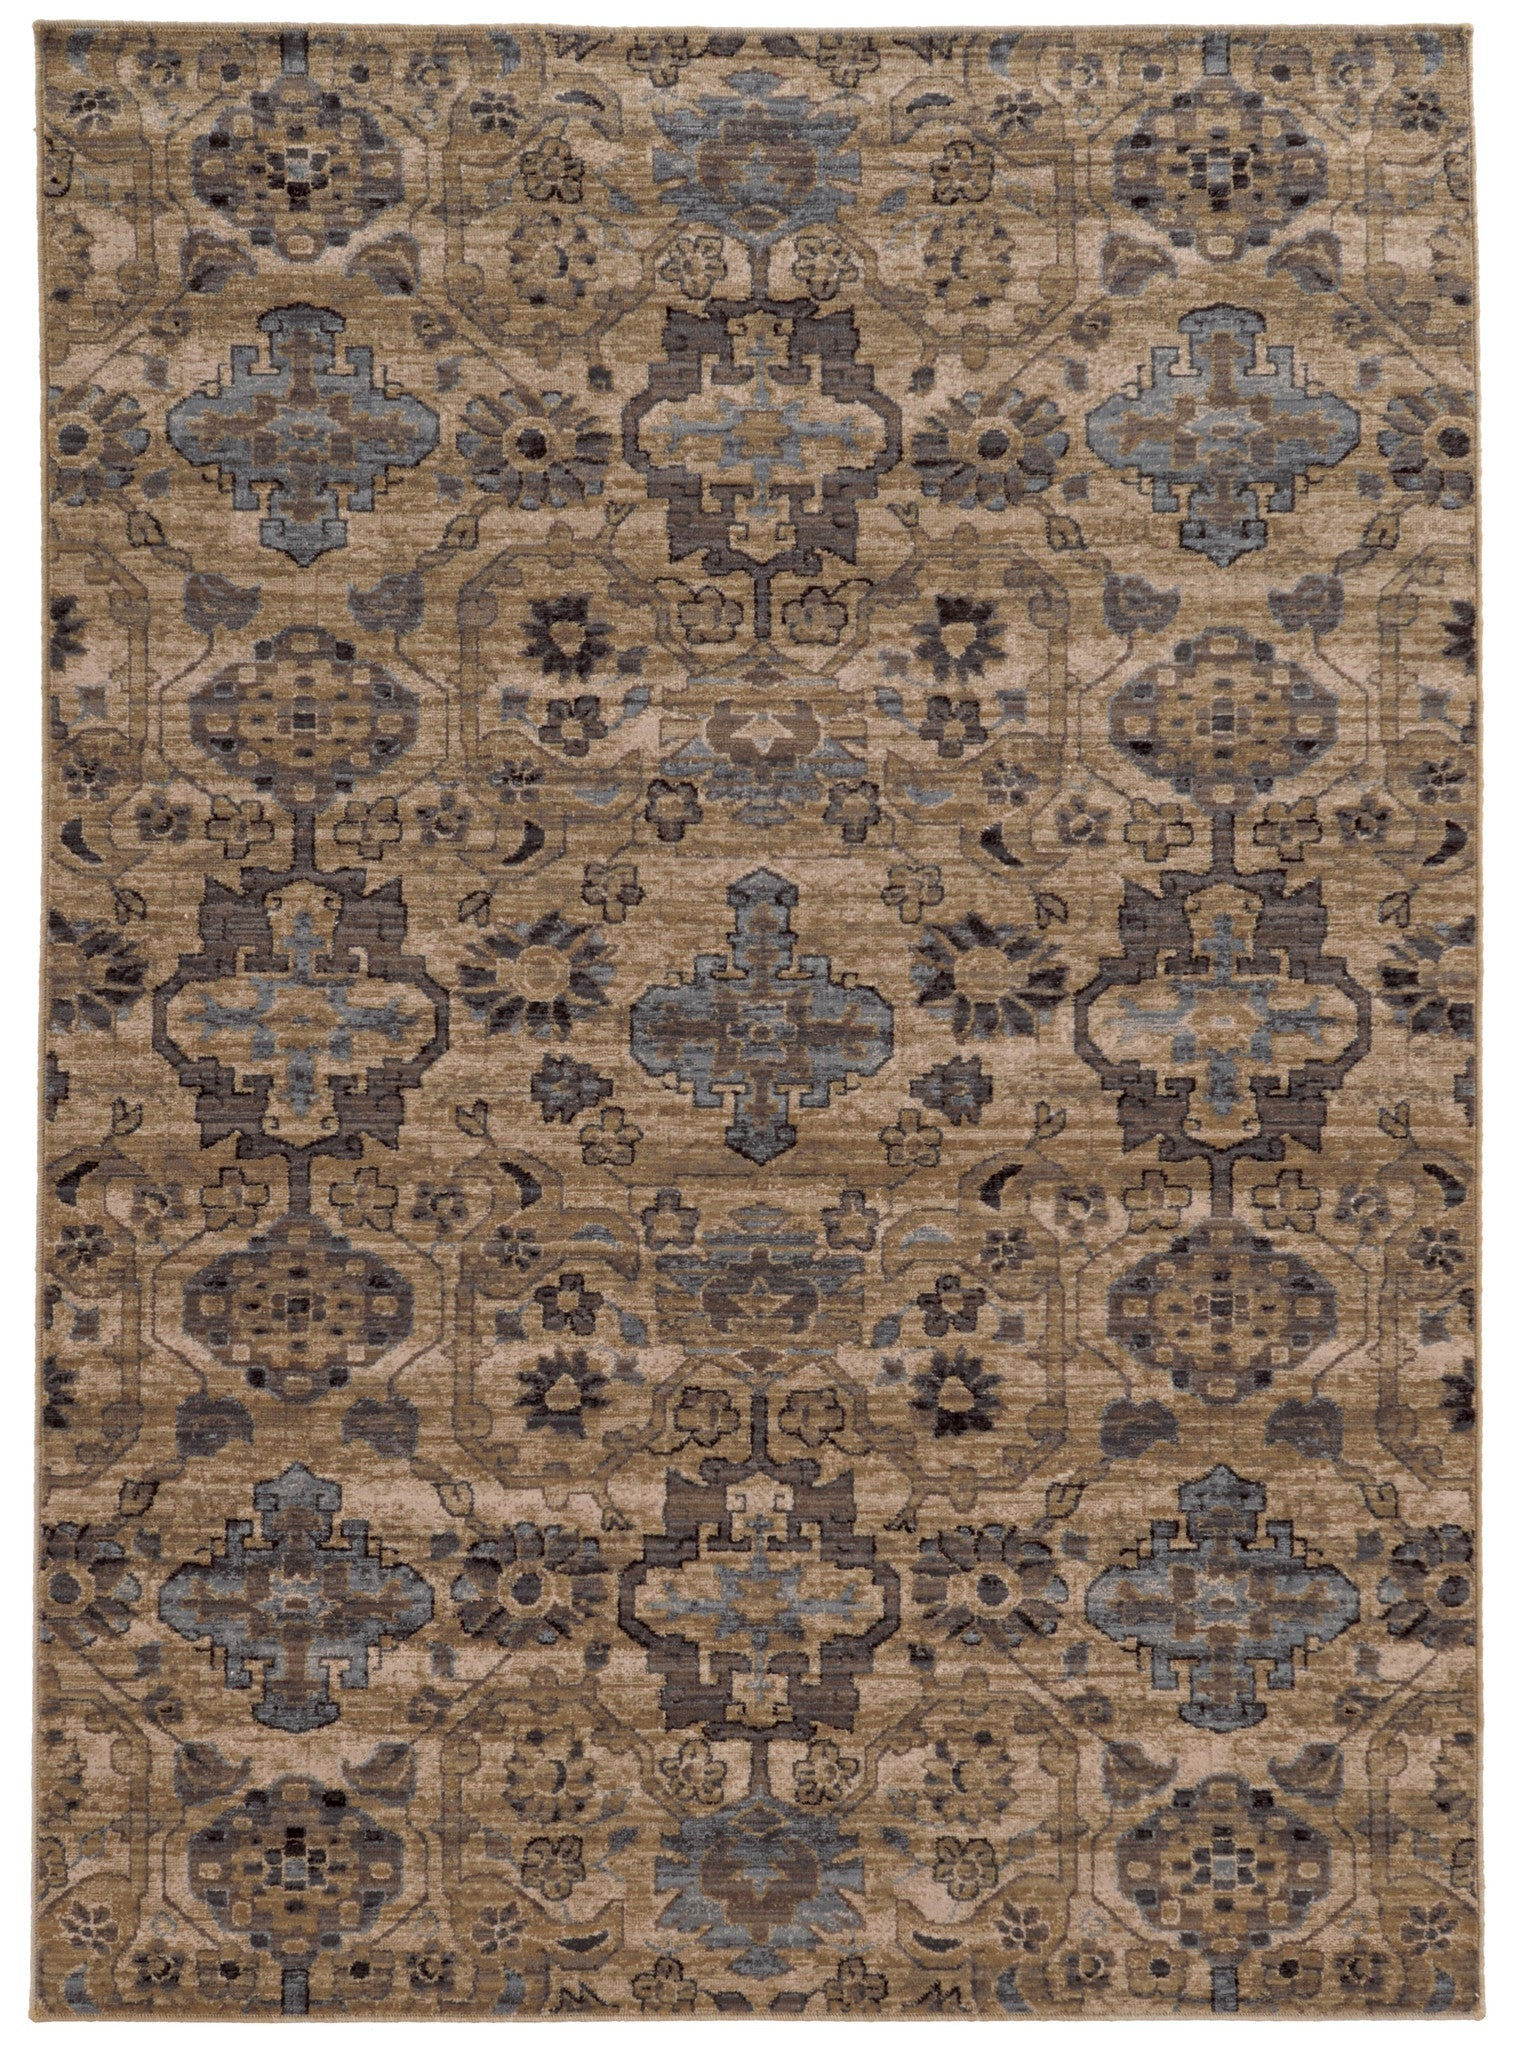 tan and light blue global distressed pattern wool area rug - woodwaves